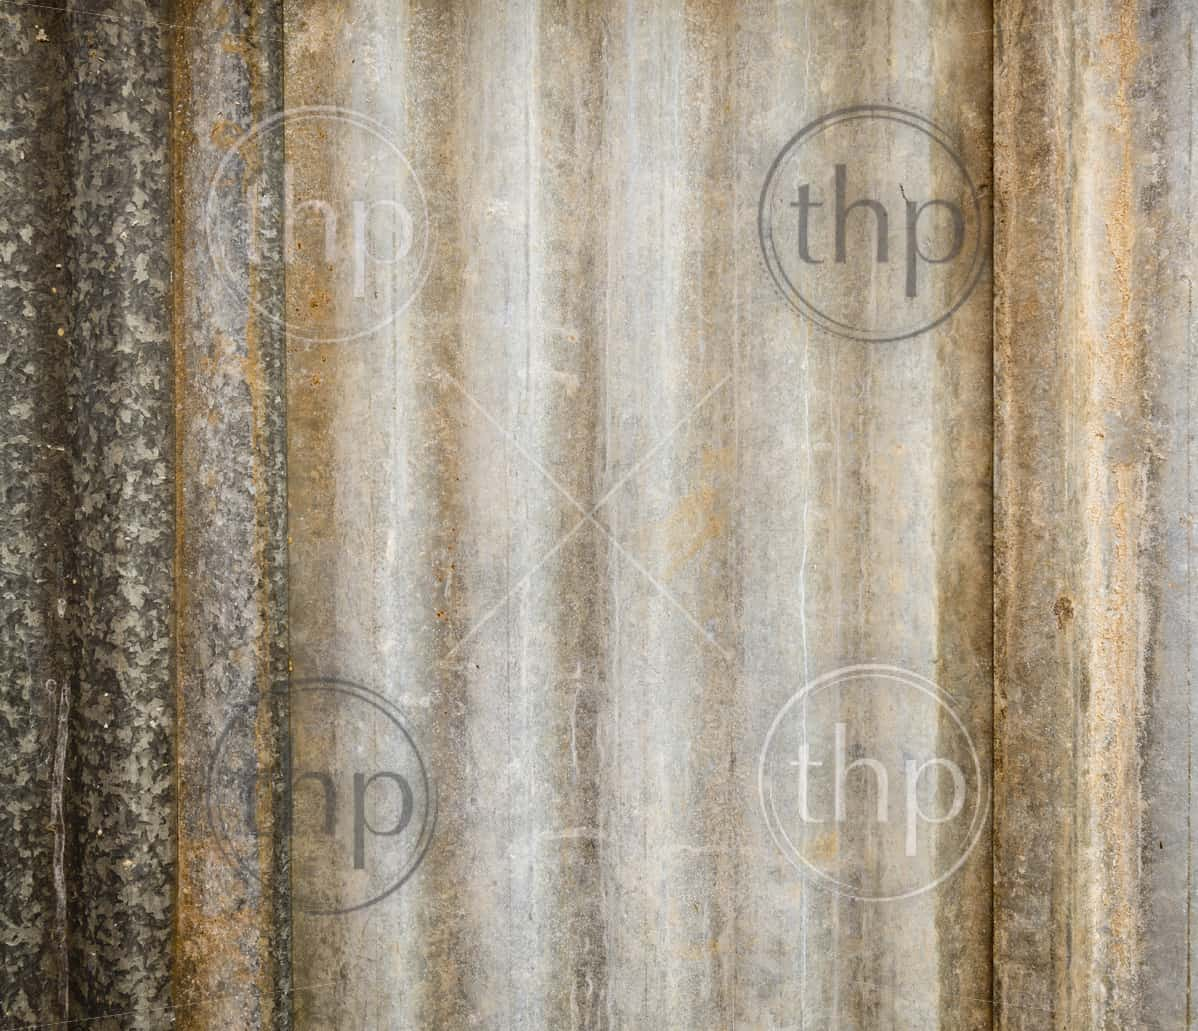 Background texture of corrugated iron sheets with rust and wear